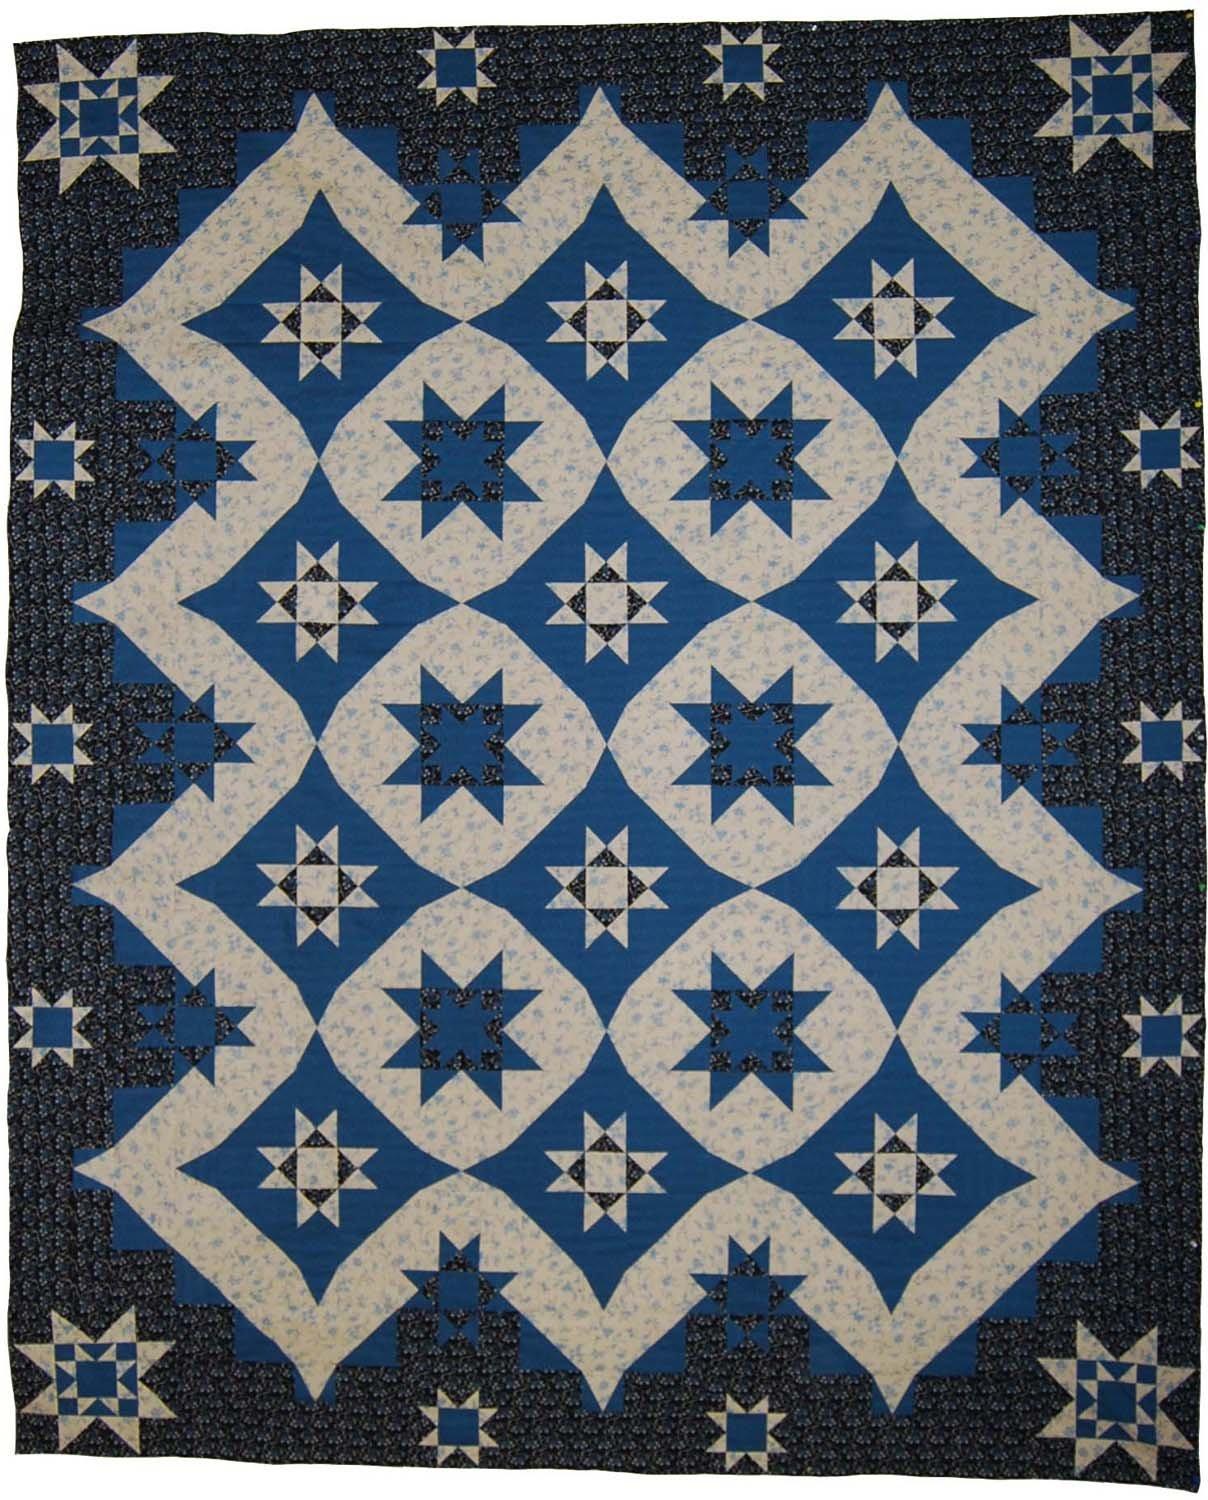 V-Block Quilt (Mystery Quilt Spring 2012) Pattern - W